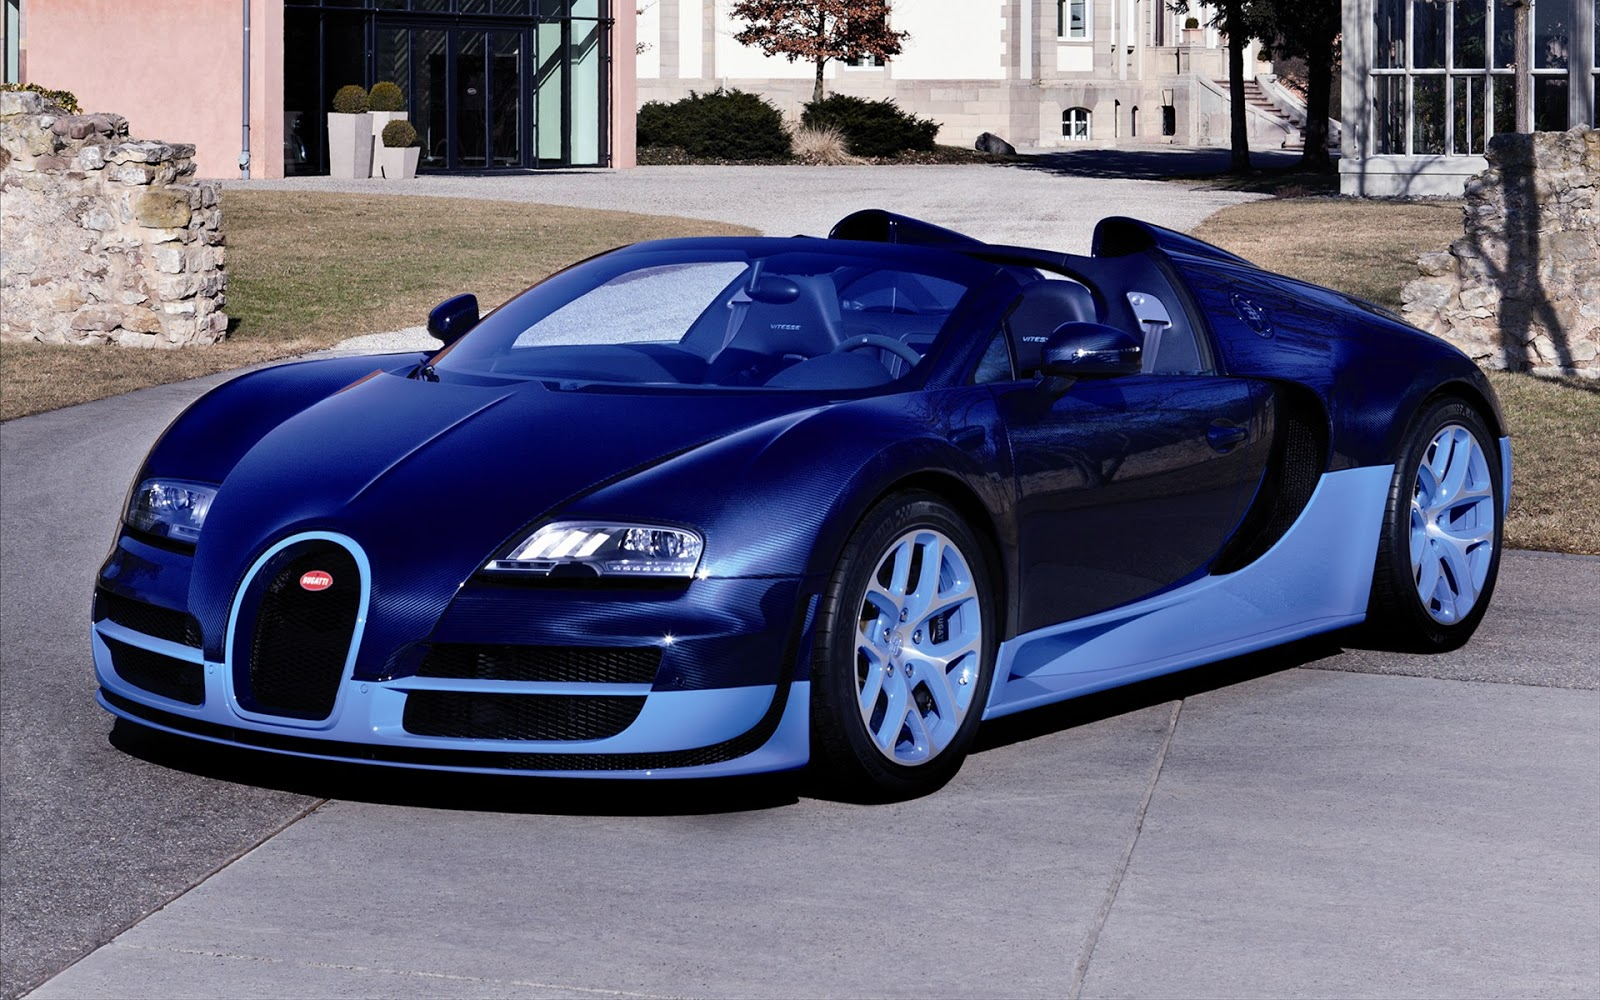 bugatti veyron vitesse wallpapers - 2017 Bugatti Veyron 16 4 Grand Sport Vitesse Wallpapers